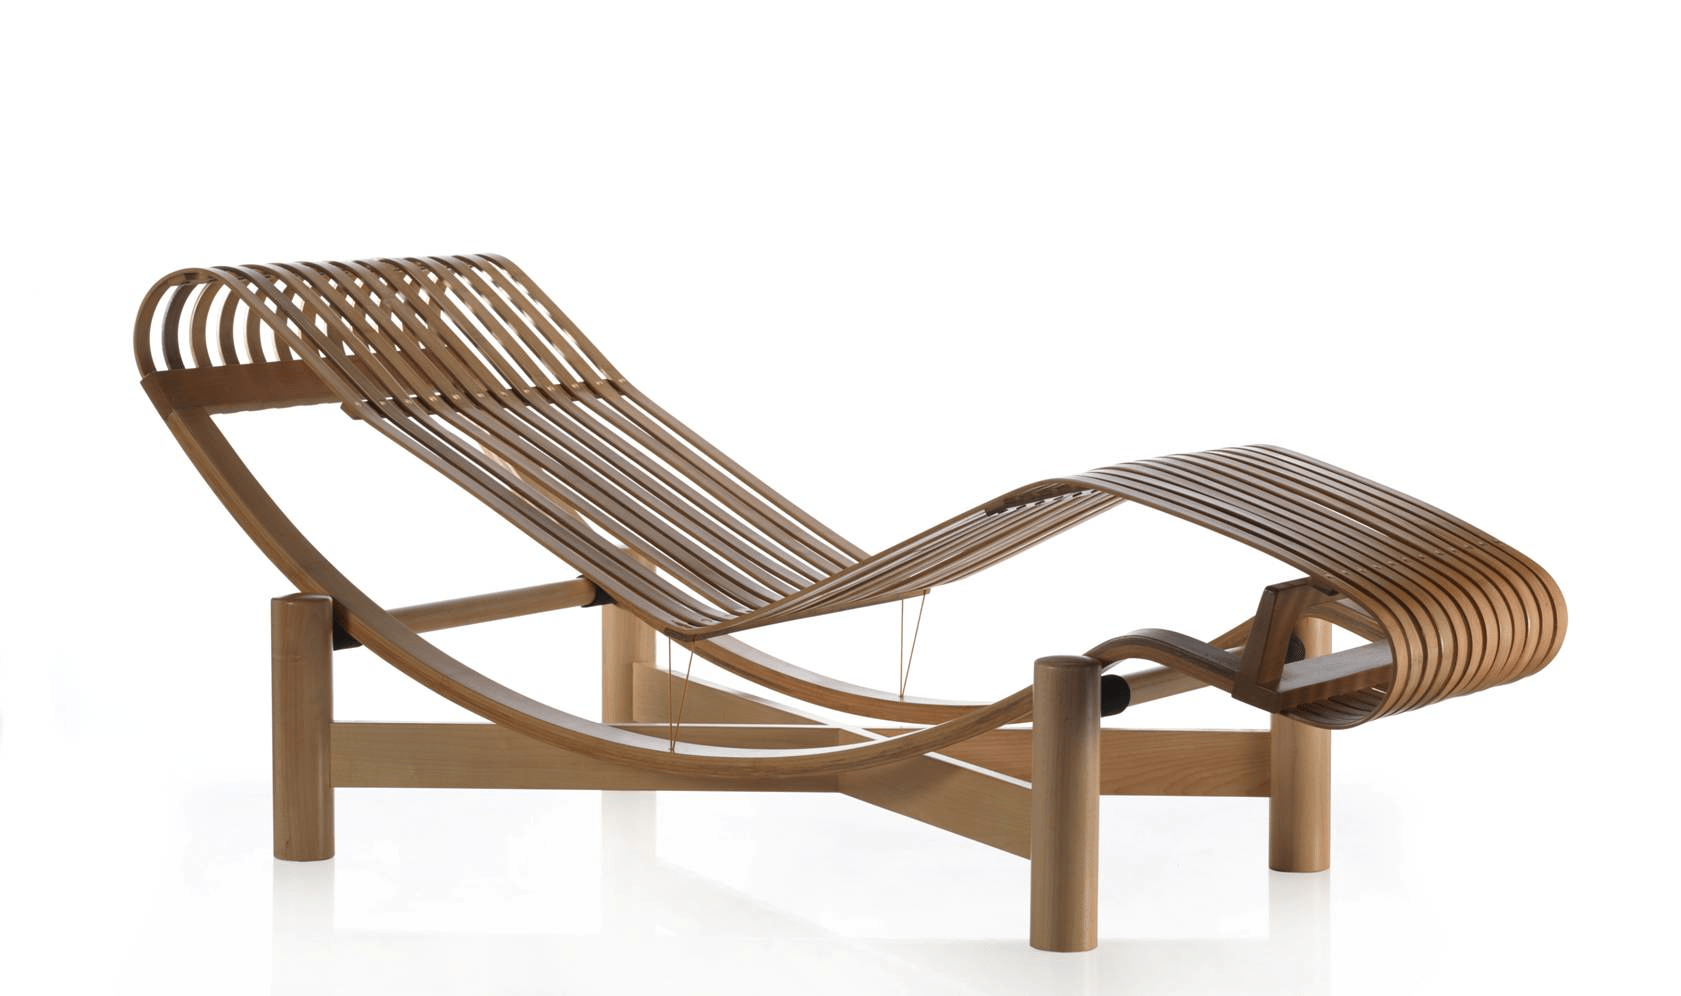 chaise lounge chairs for outdoors ikea barrel chair designapplause outdoor tokyo longue charlotte